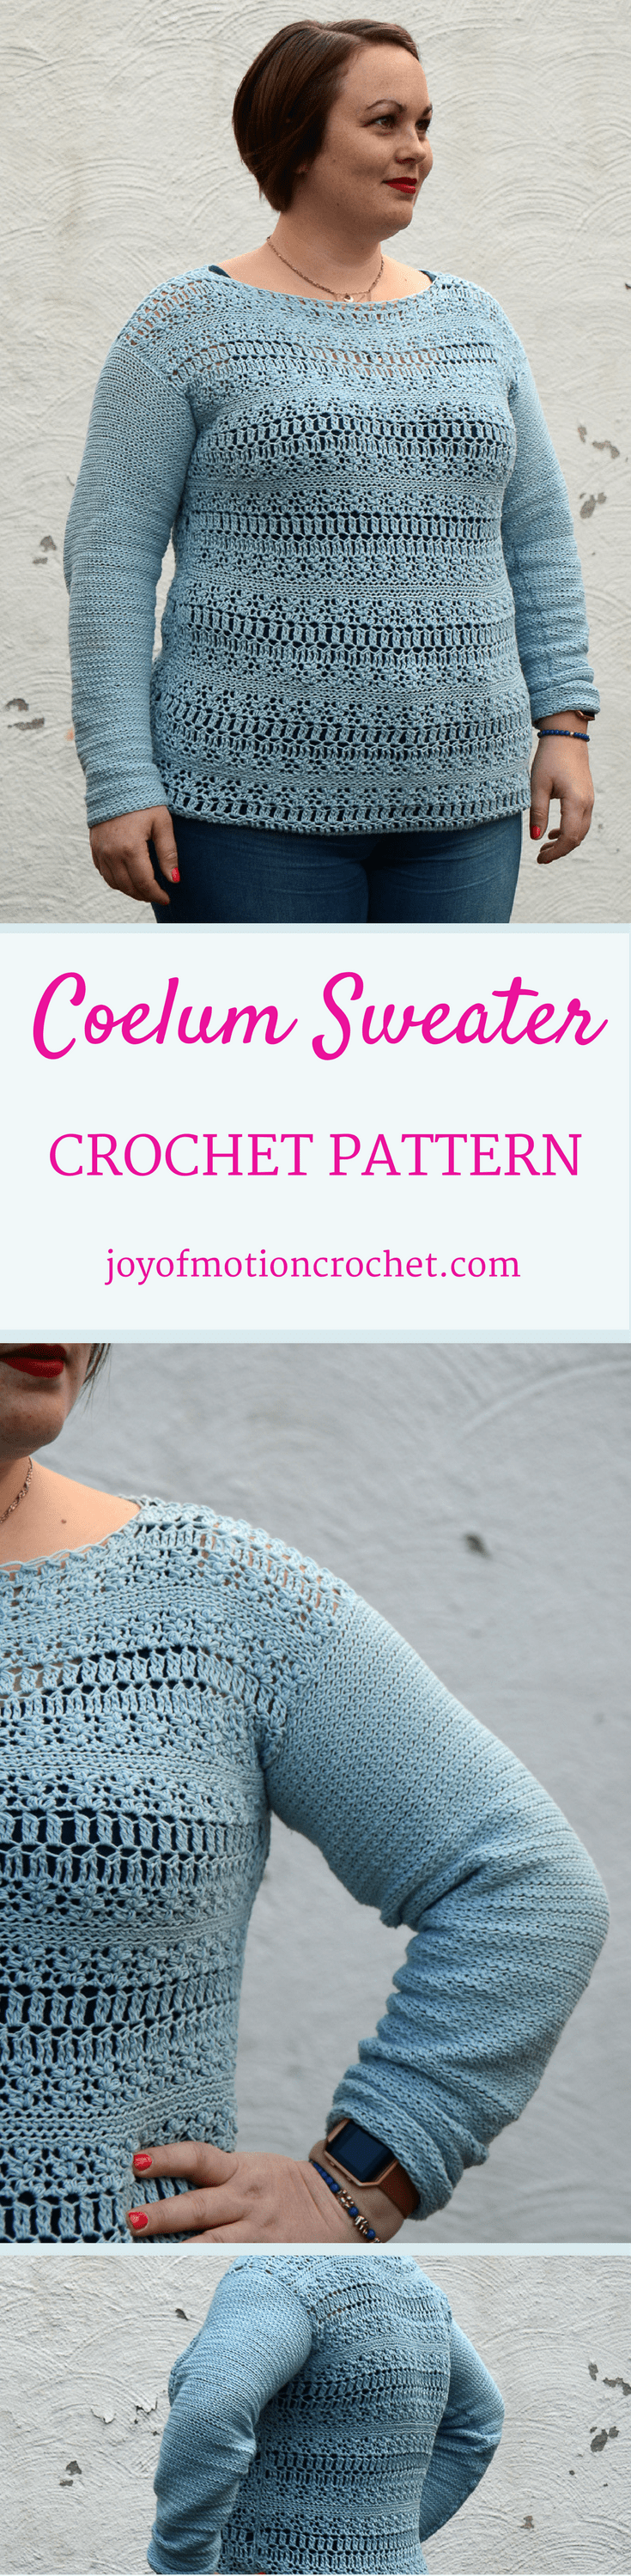 The Coelum Sweater a crochet pattern. Woman's sweater crochet pattern with skill level easy. Make this fashionable crochet sweater with you own hook & yarn. Sweater crochet pattern easy for her . Crochet sweater | woman's crochet sweater | crochet pattern for her | fashionable crochet sweater | interesting crochet sweater | click to learn more or repin to save it forever.